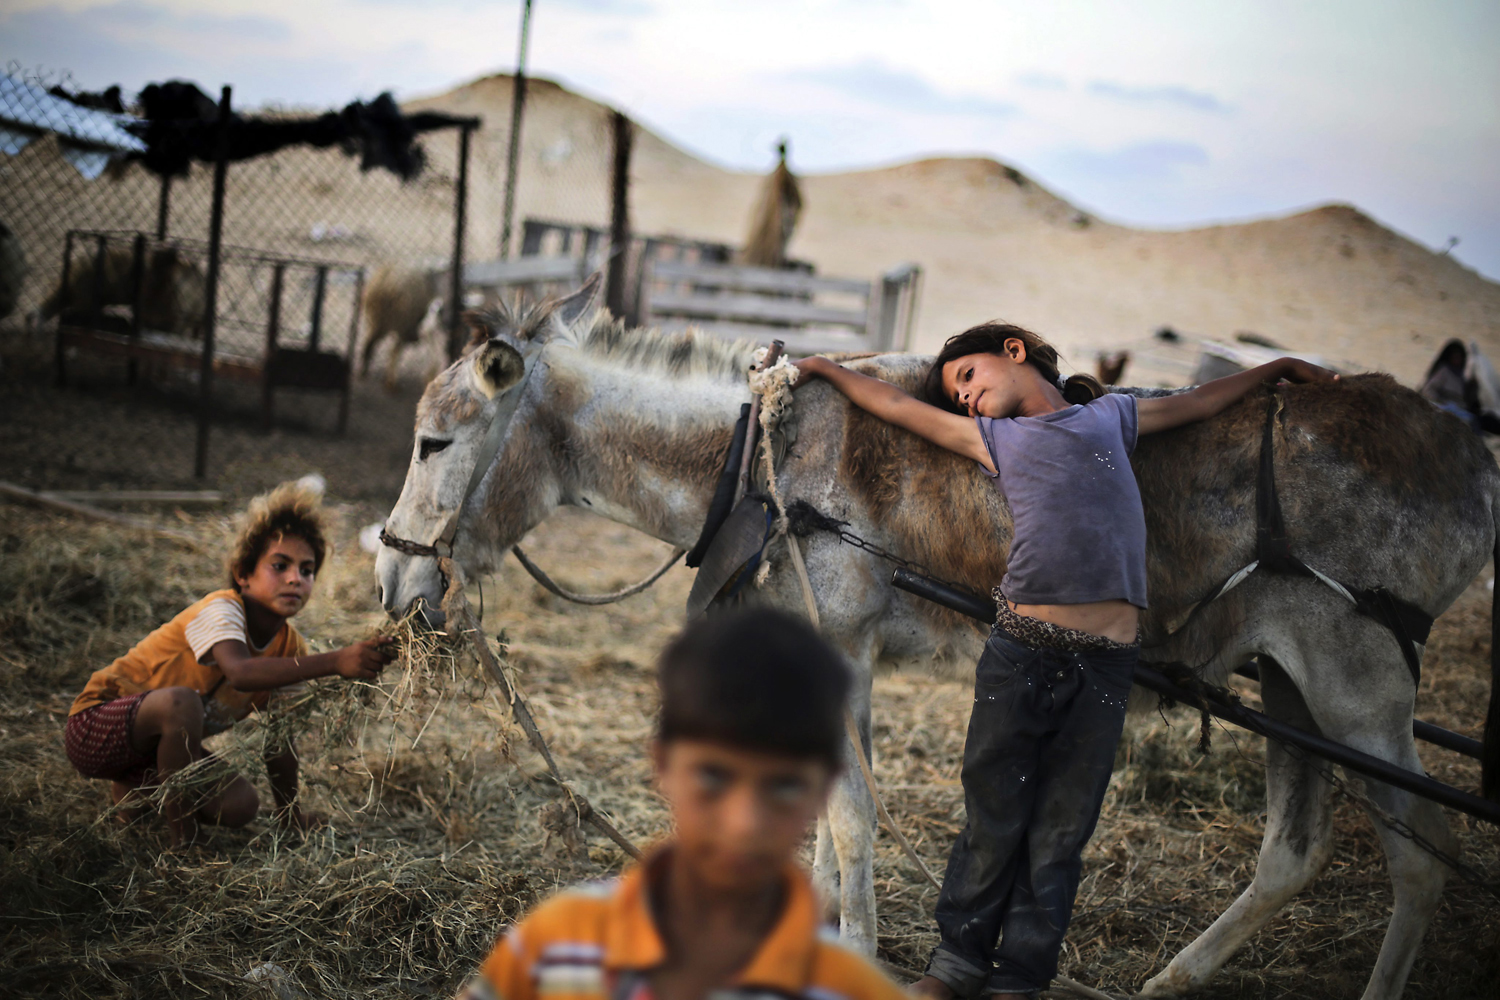 June 26, 2013. Palestinian children play outside their family's tent in a poverty-stricken quarter of the town of Younis, in the southern Gaza Strip.